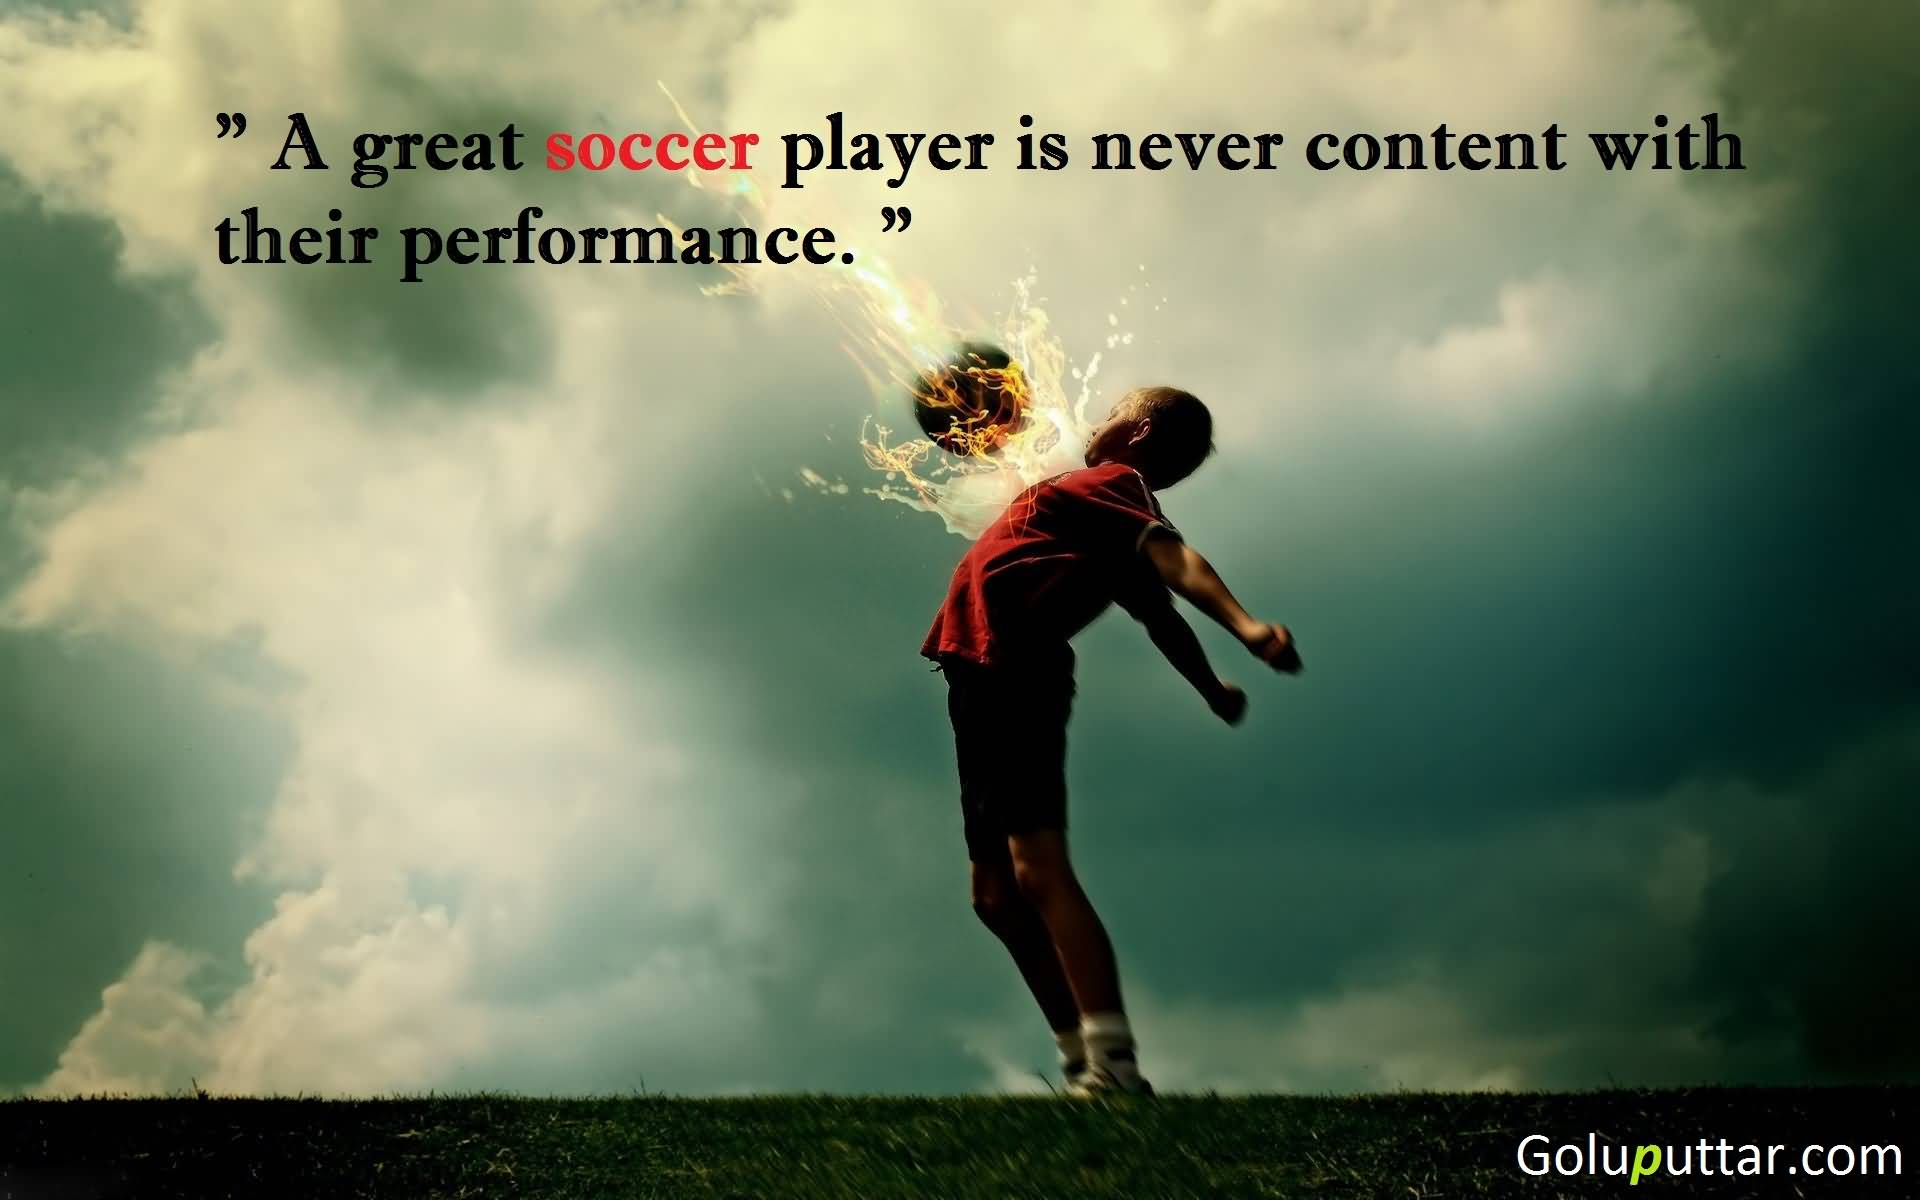 A great soccer player is never content with their performance